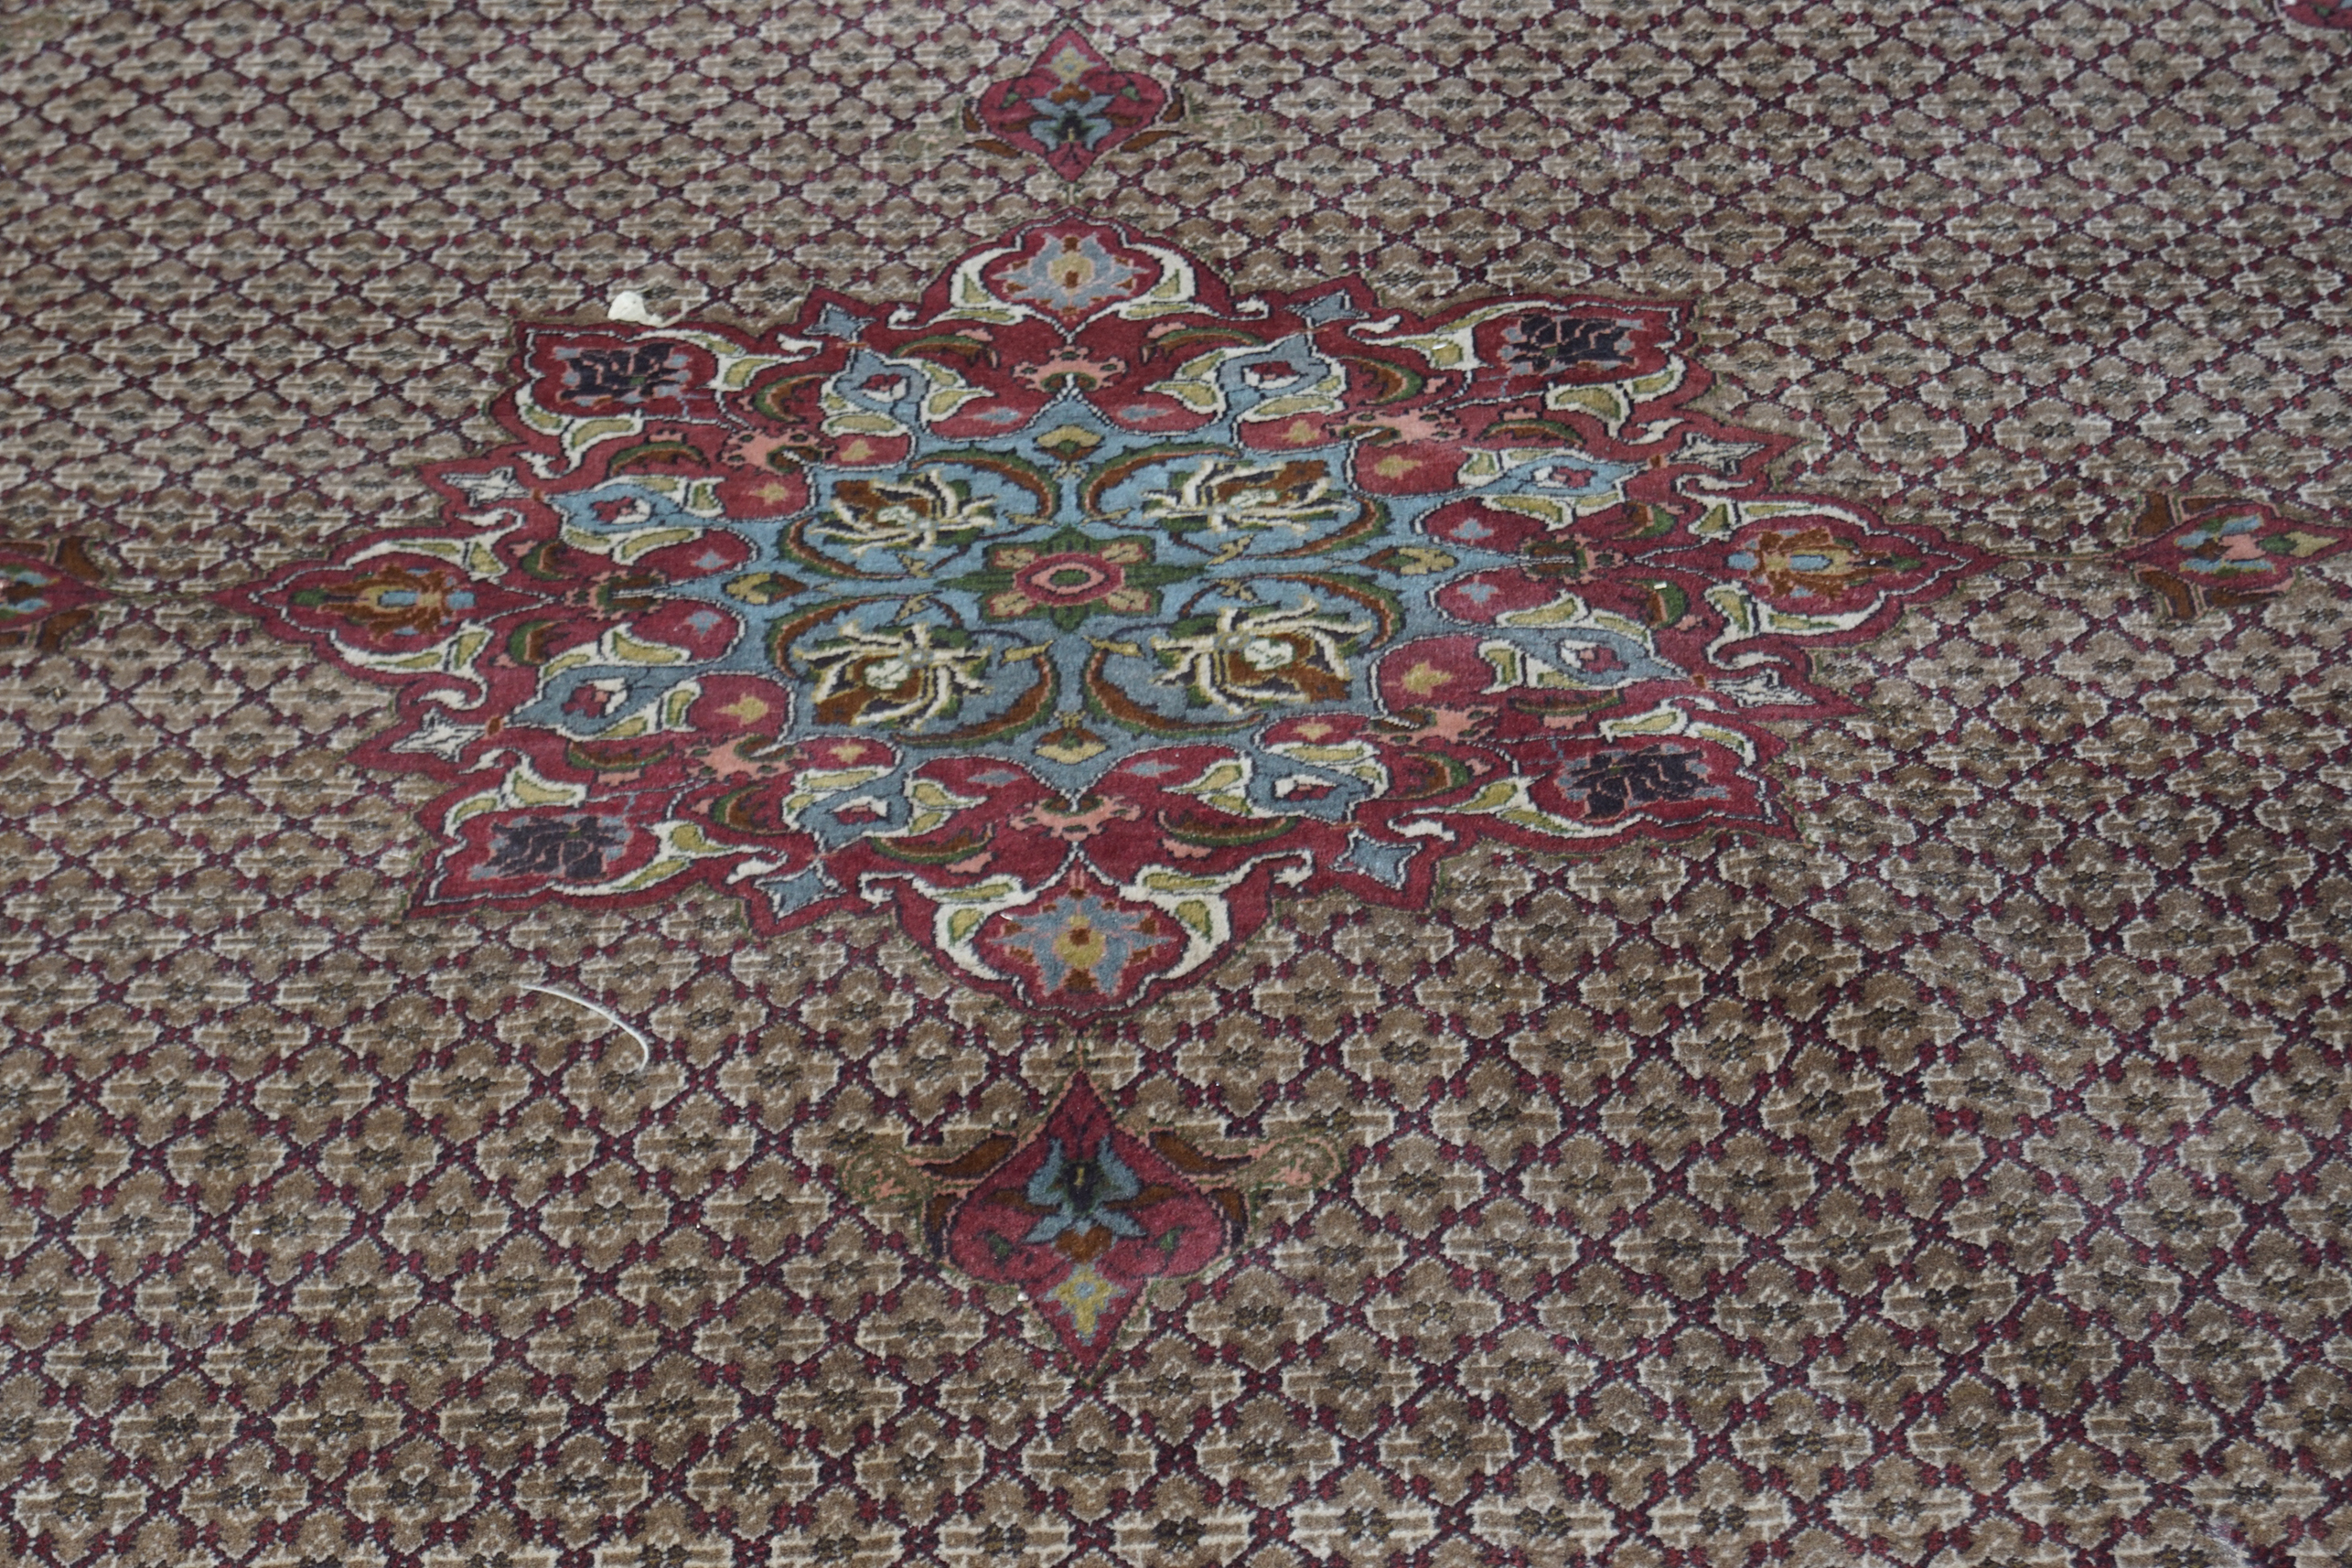 EARLY 20TH-CENTURY PERSIAN CARPET - Image 3 of 4